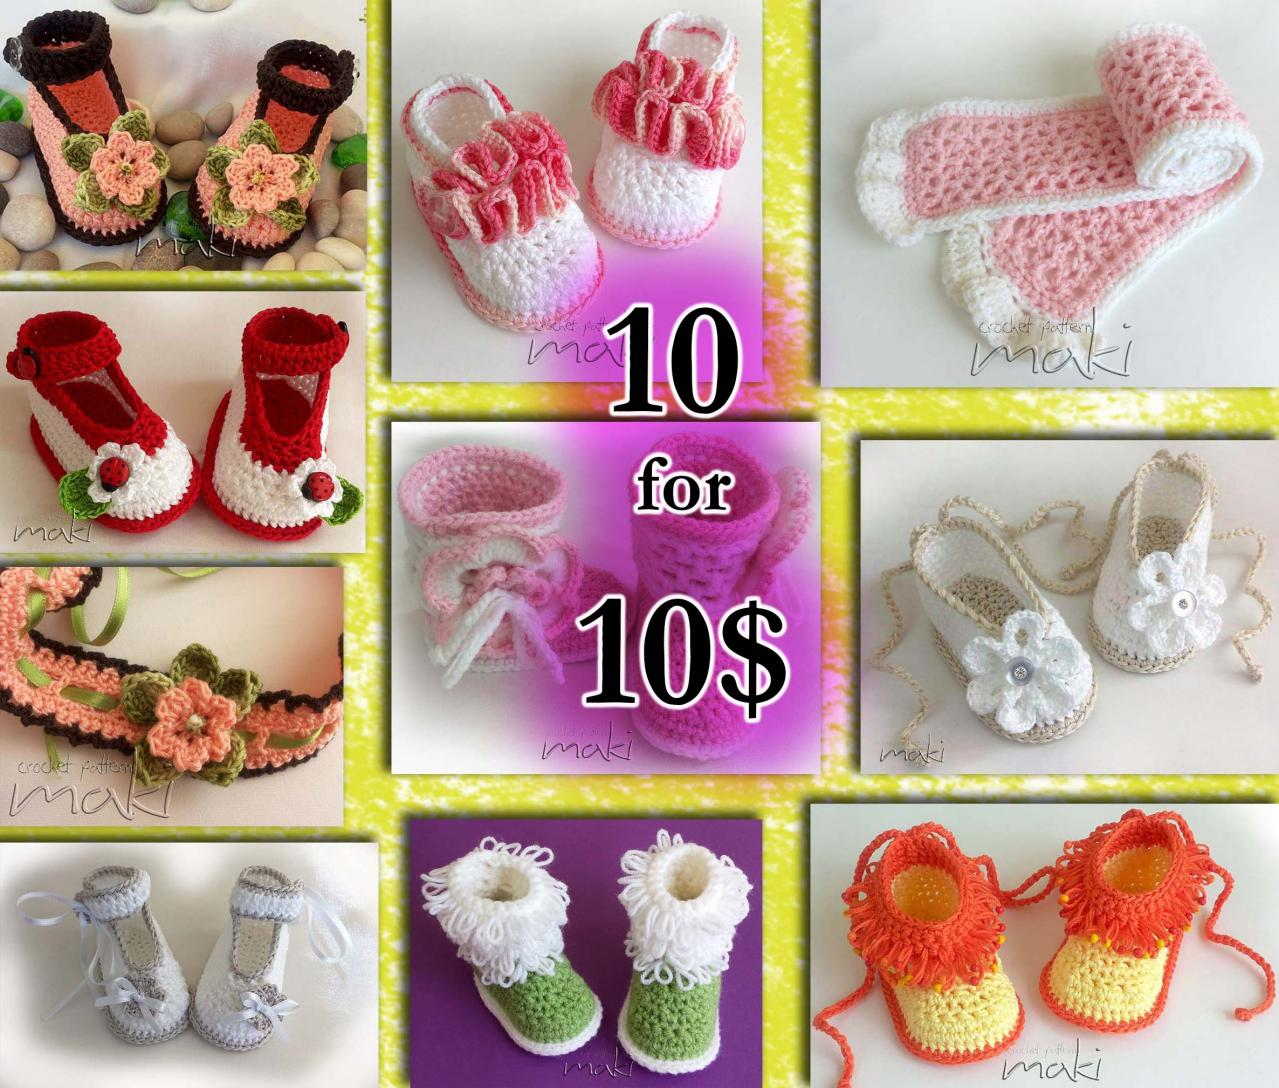 Crochet patterns - Permission to sell finished items. Full of large pictures!